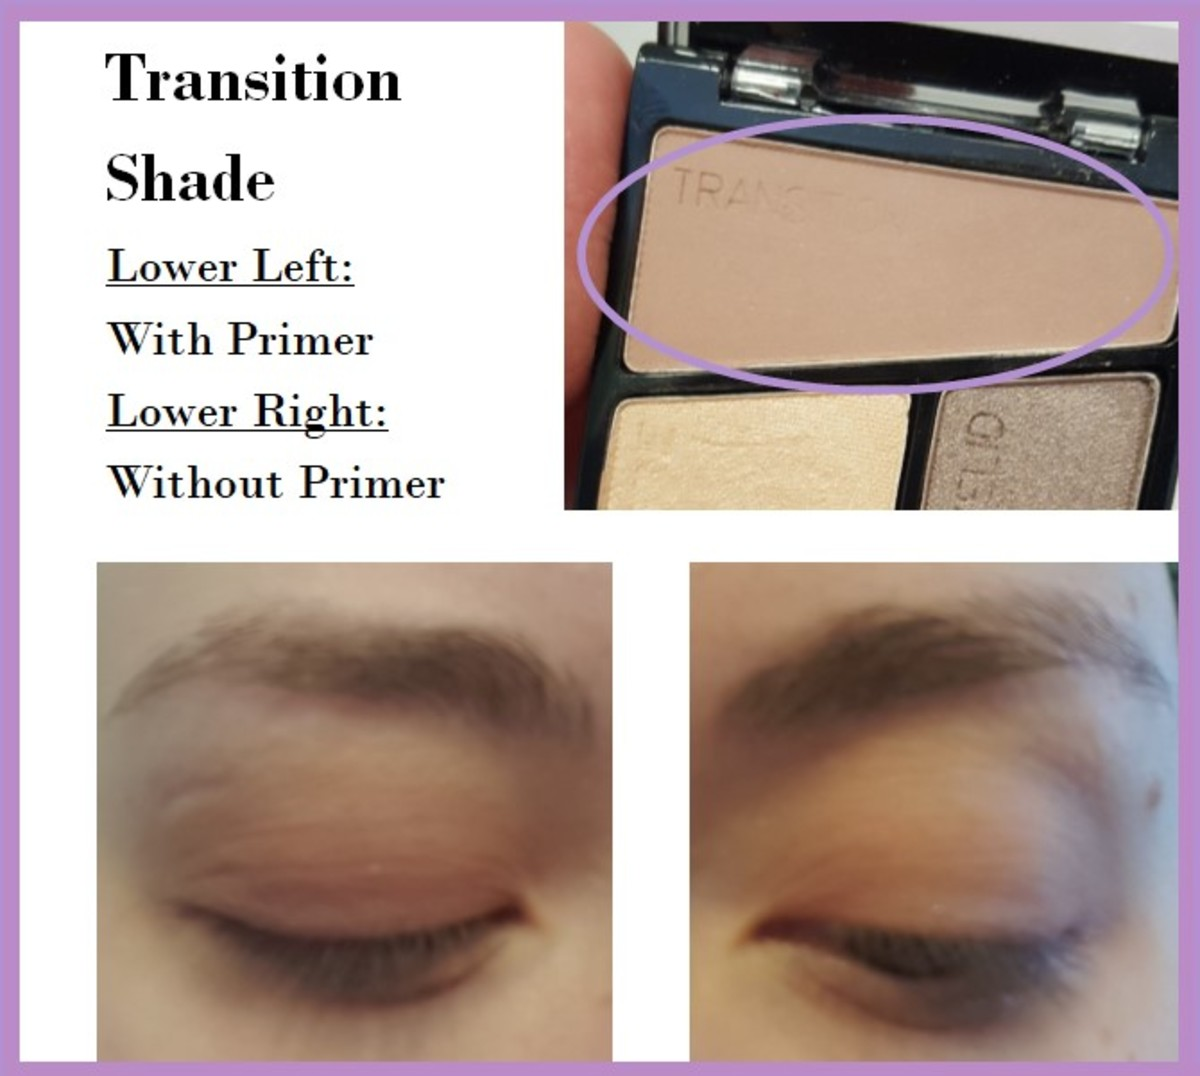 Eye swatches of the Transition Shade from the Wet 'N' Wild Color Icon Quad in Silent Treatment